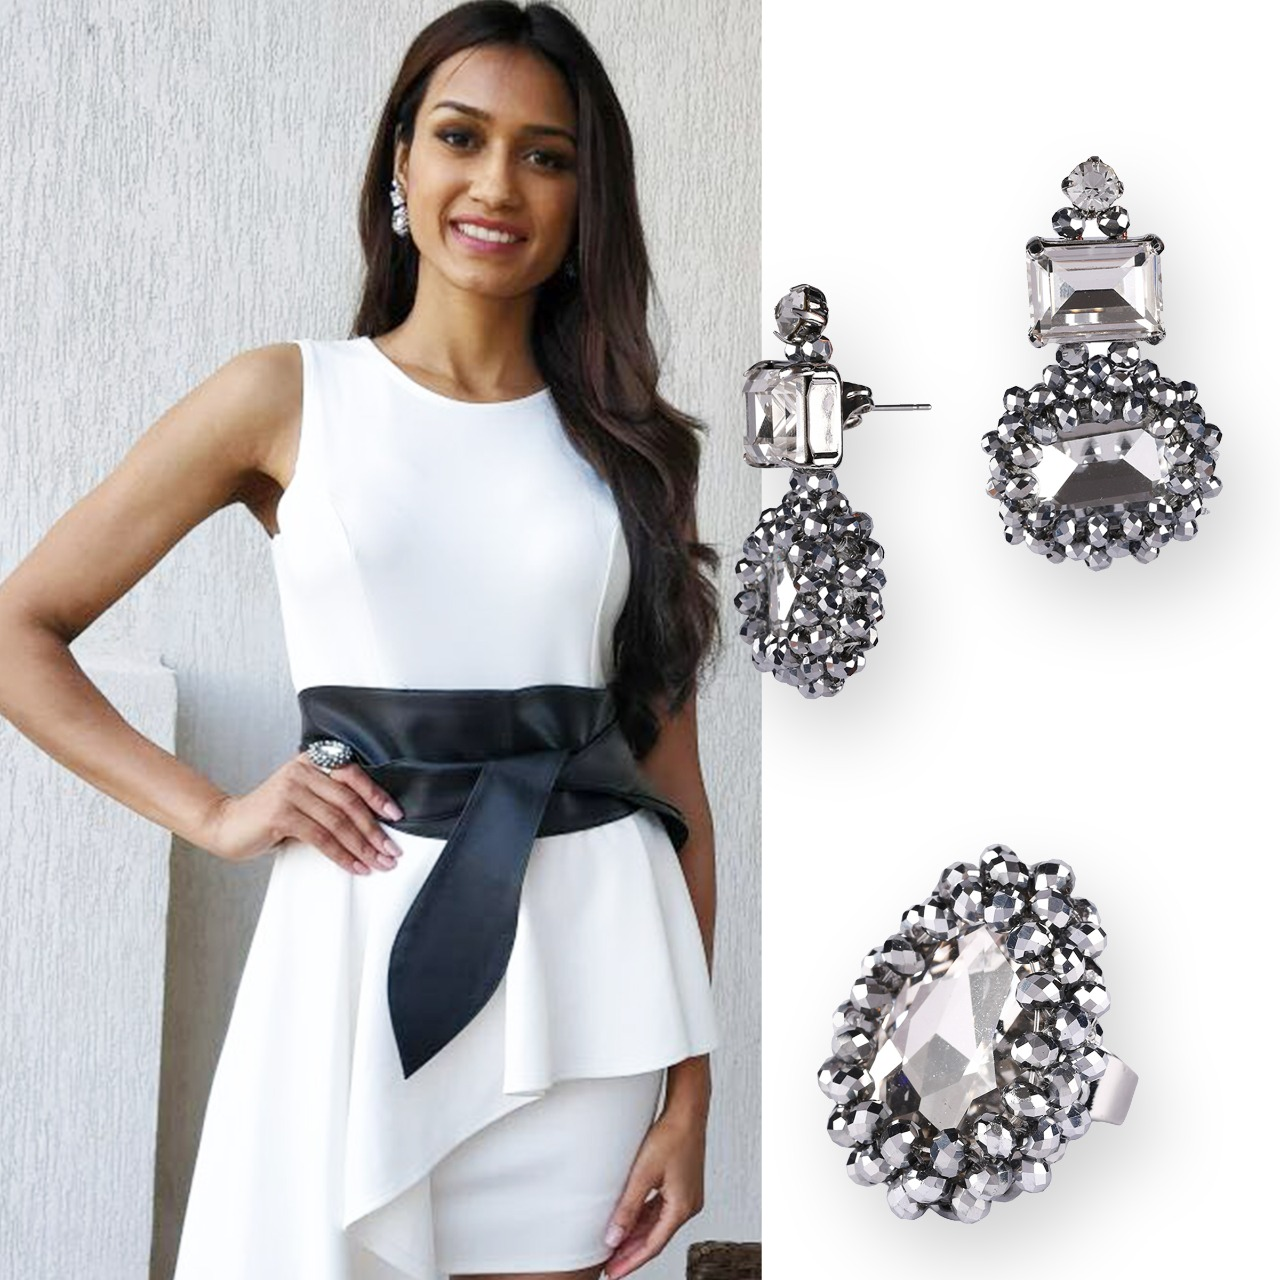 Miss India Runner-up Priyanka Kumari wearing Pieces from the Interstellar Collection